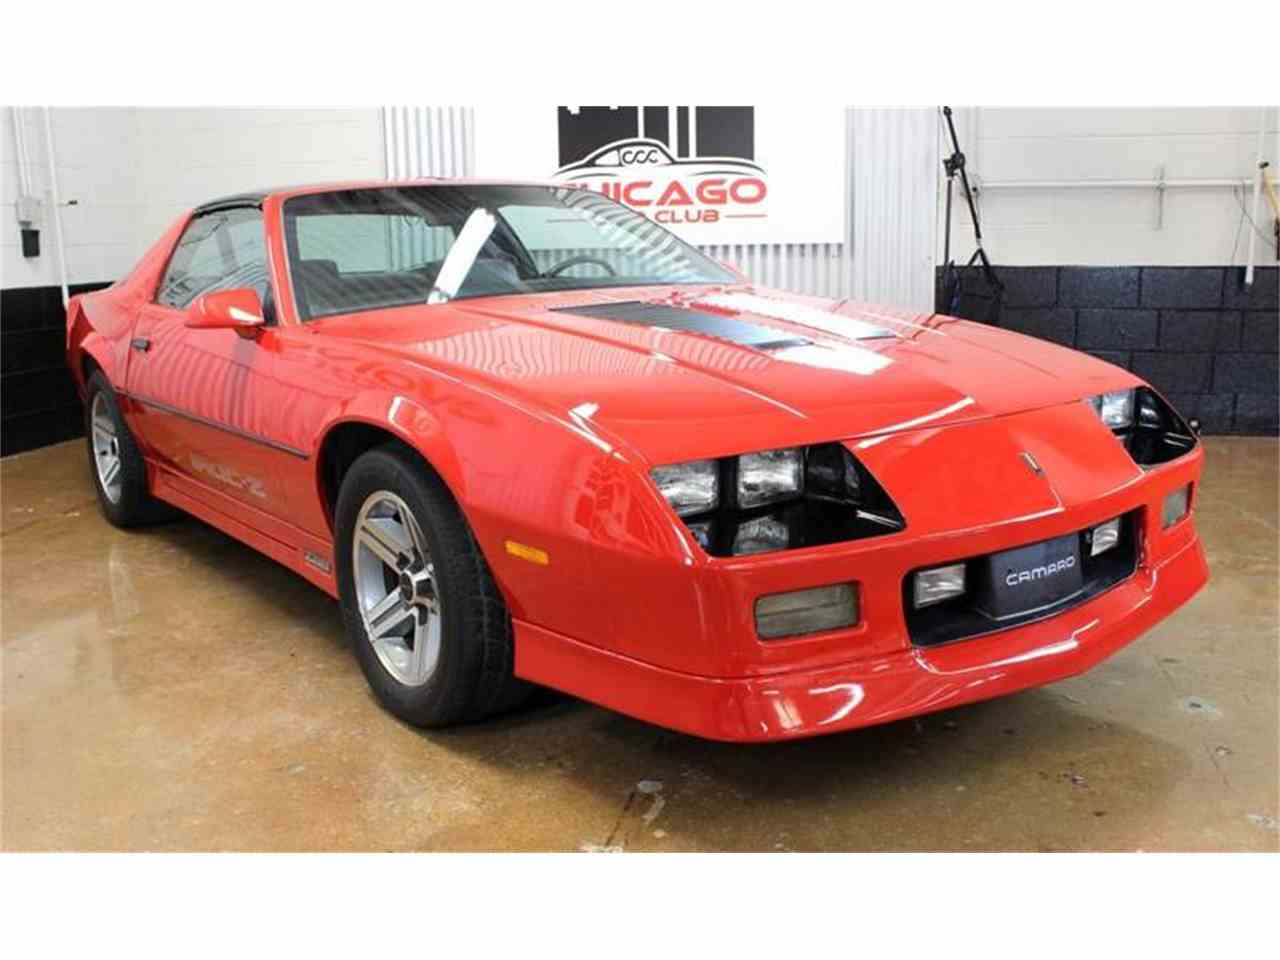 Large Picture of '85 Chevrolet Camaro - $13,900.00 - MH2P